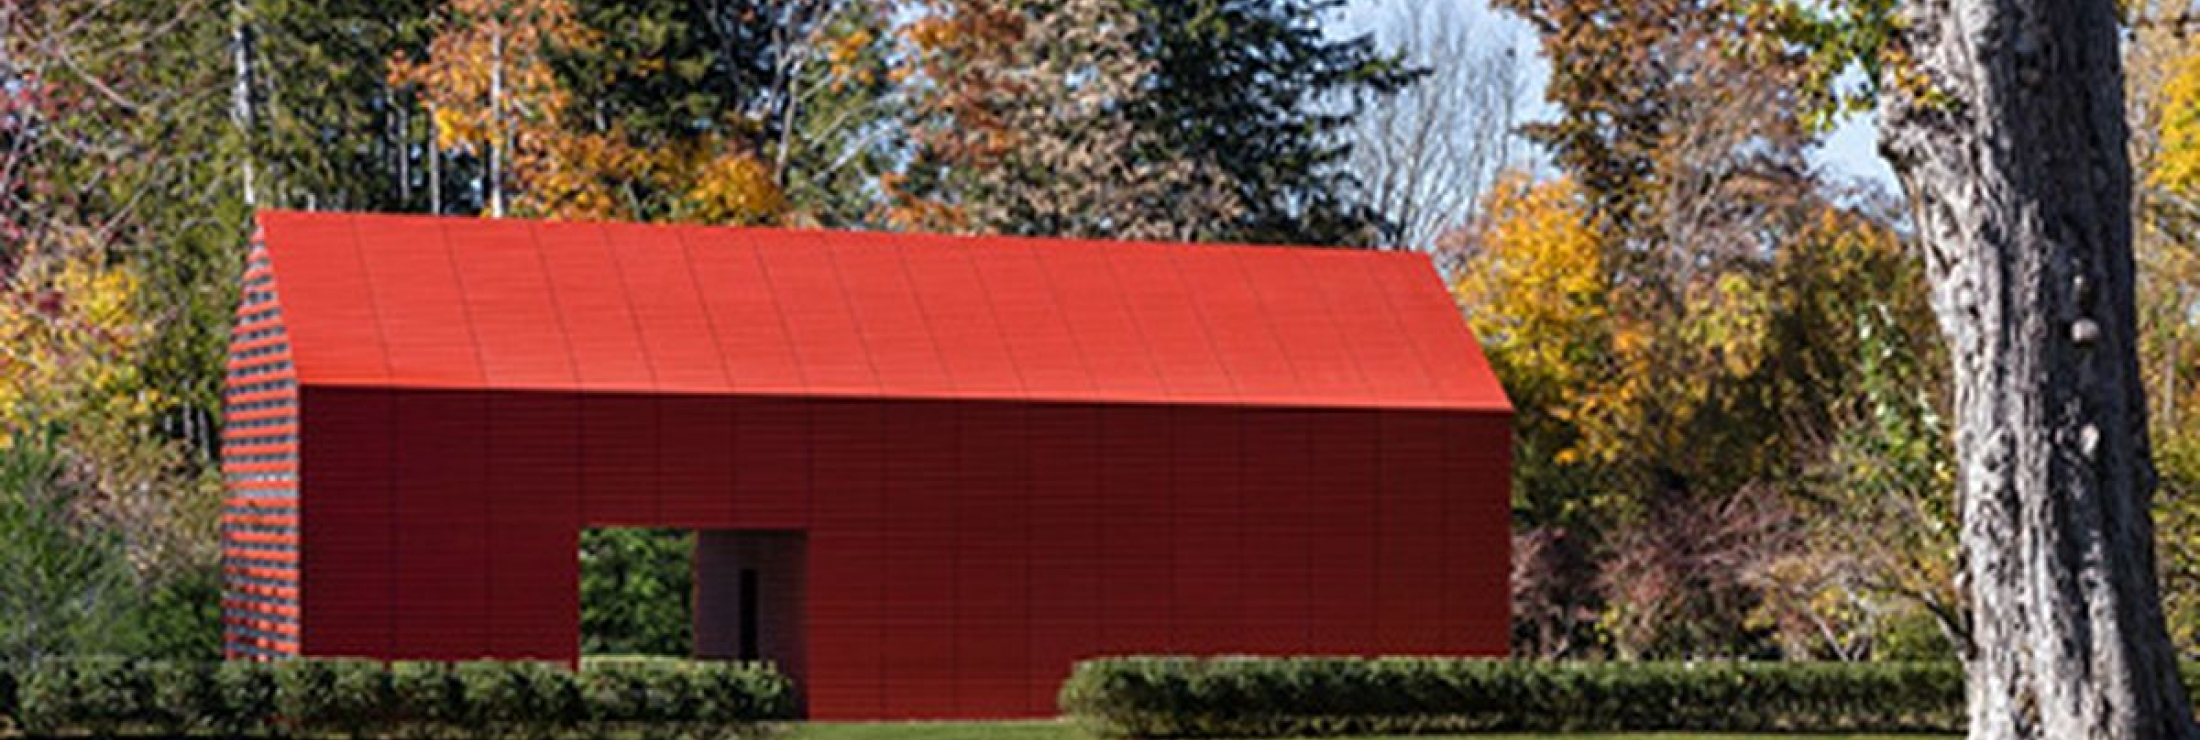 Cladding Corp -  The Red Barn - Swisspearl - Photo Credit: Roger Ferris + Partners